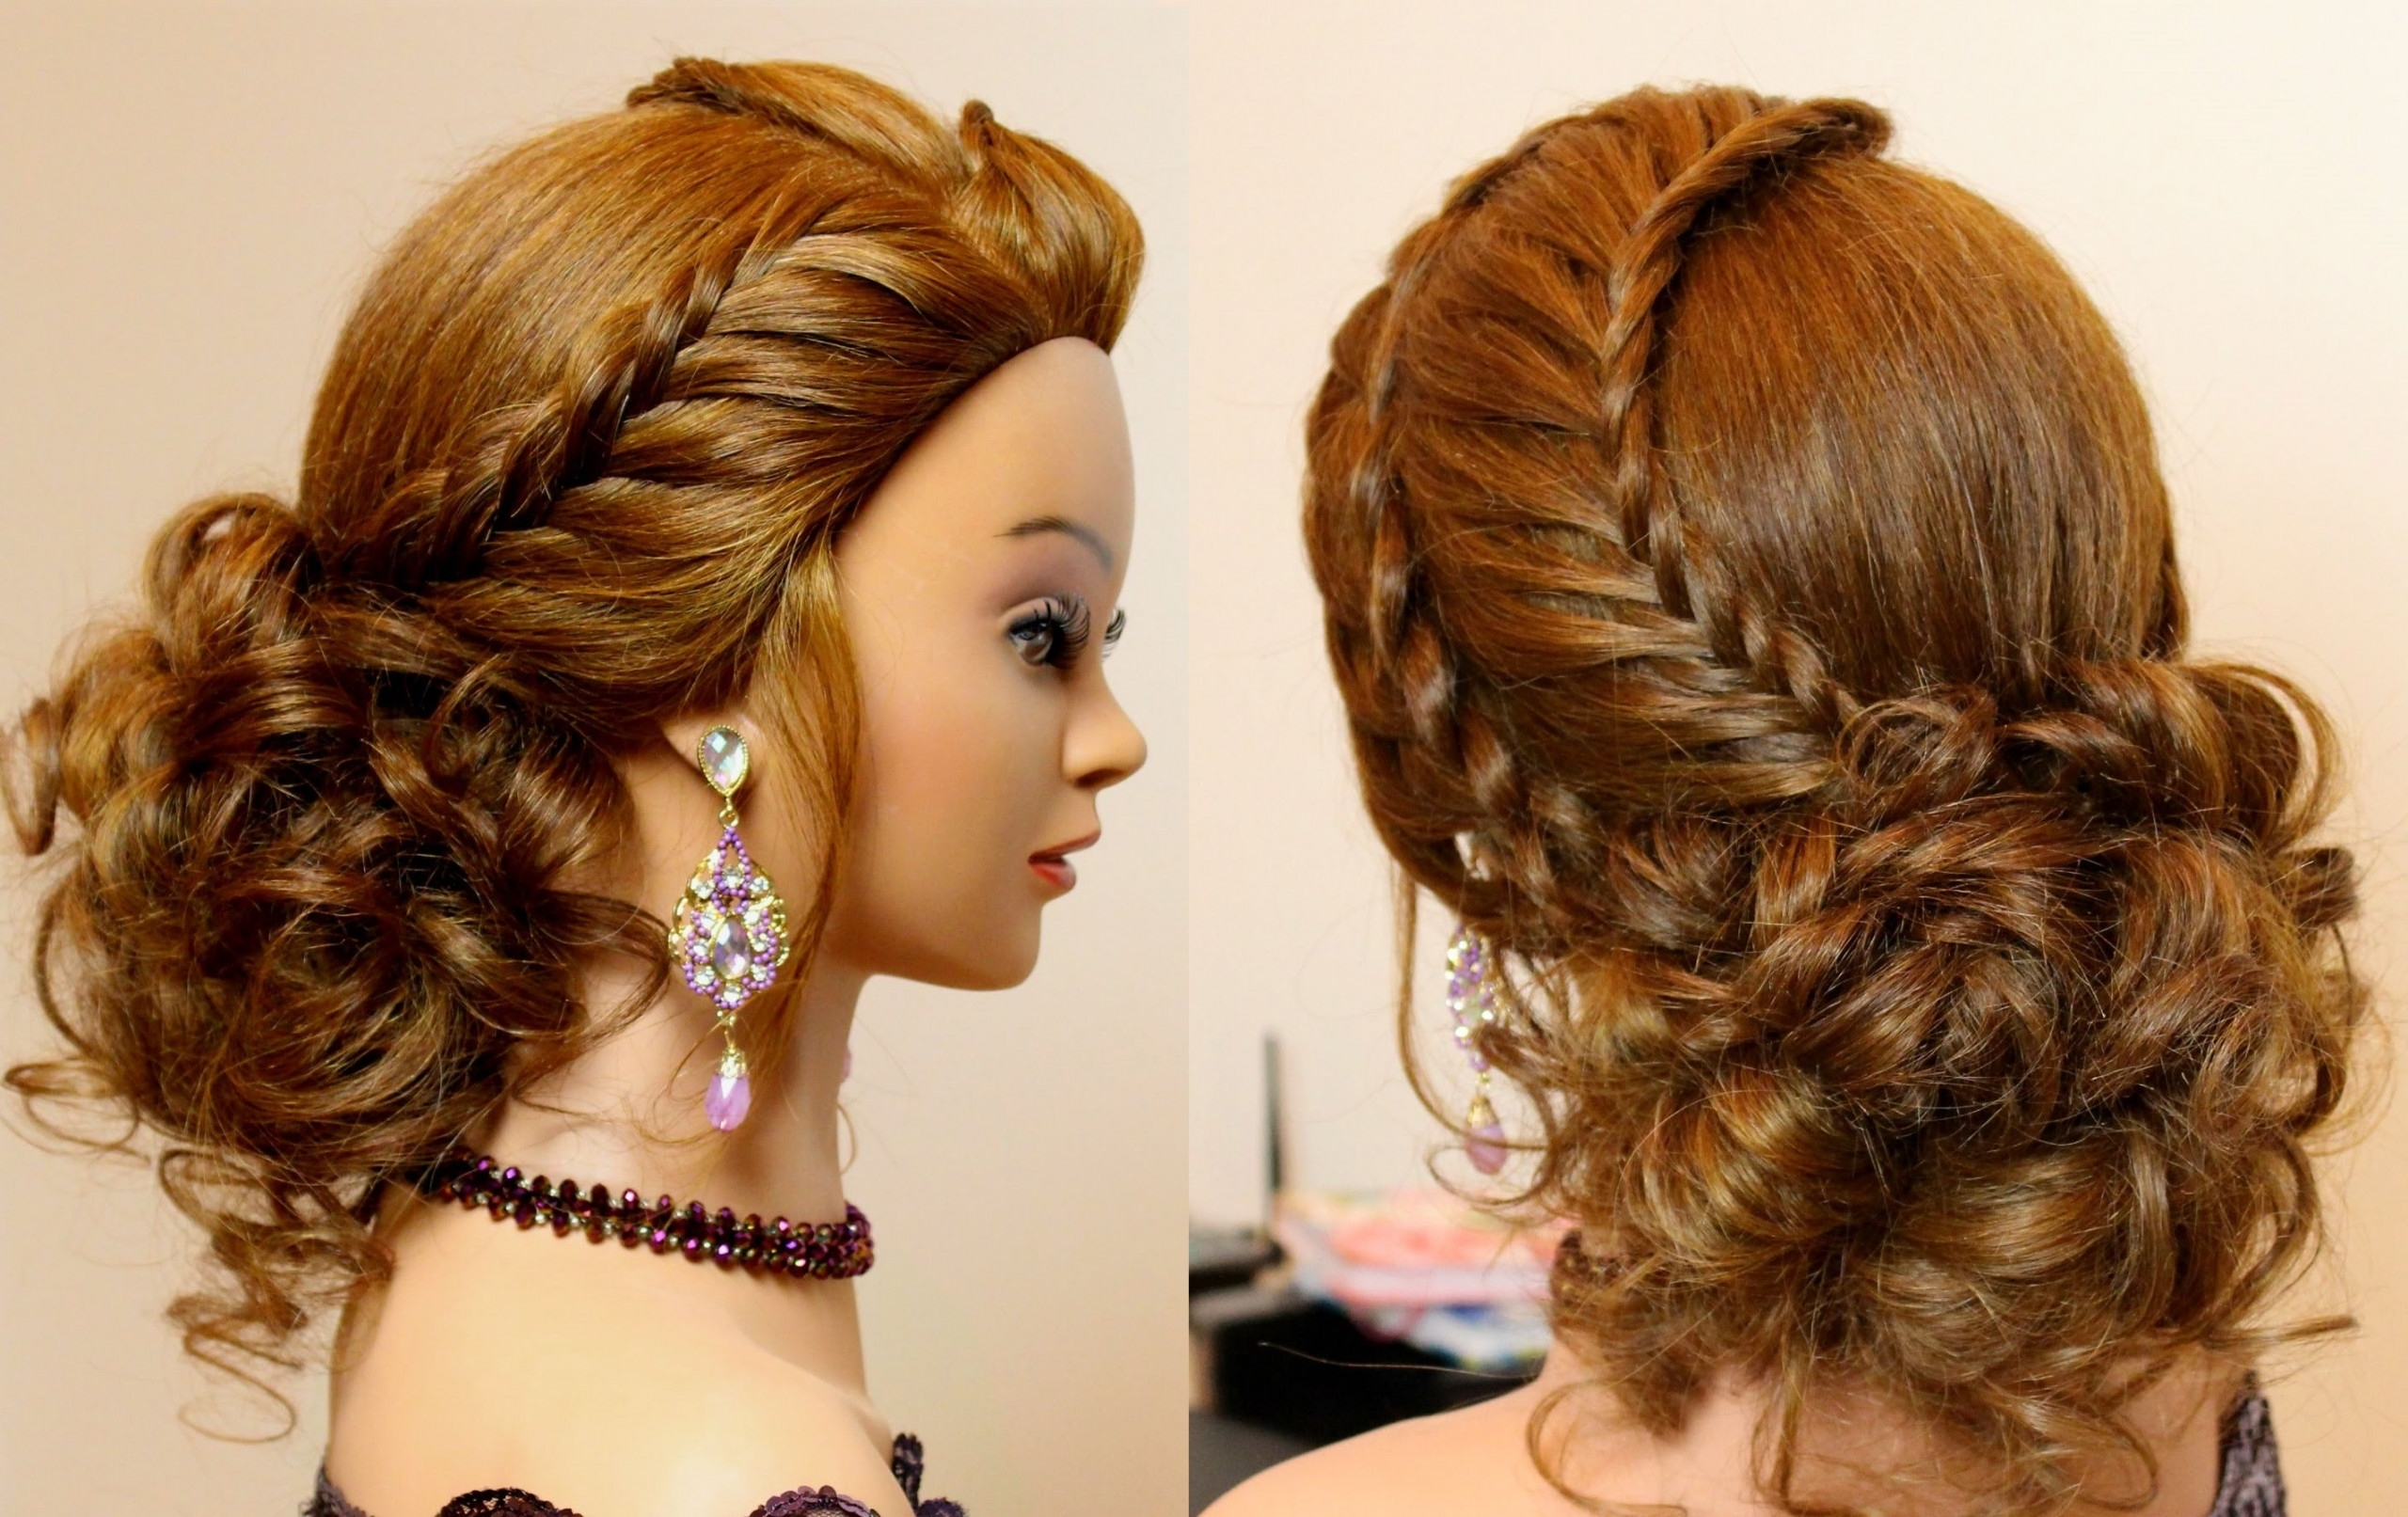 Hairstyle For Prom Bridal Prom Updo Hairstyles For Medium Long Intended For Prom Updo Hairstyles For Medium Hair (View 4 of 15)